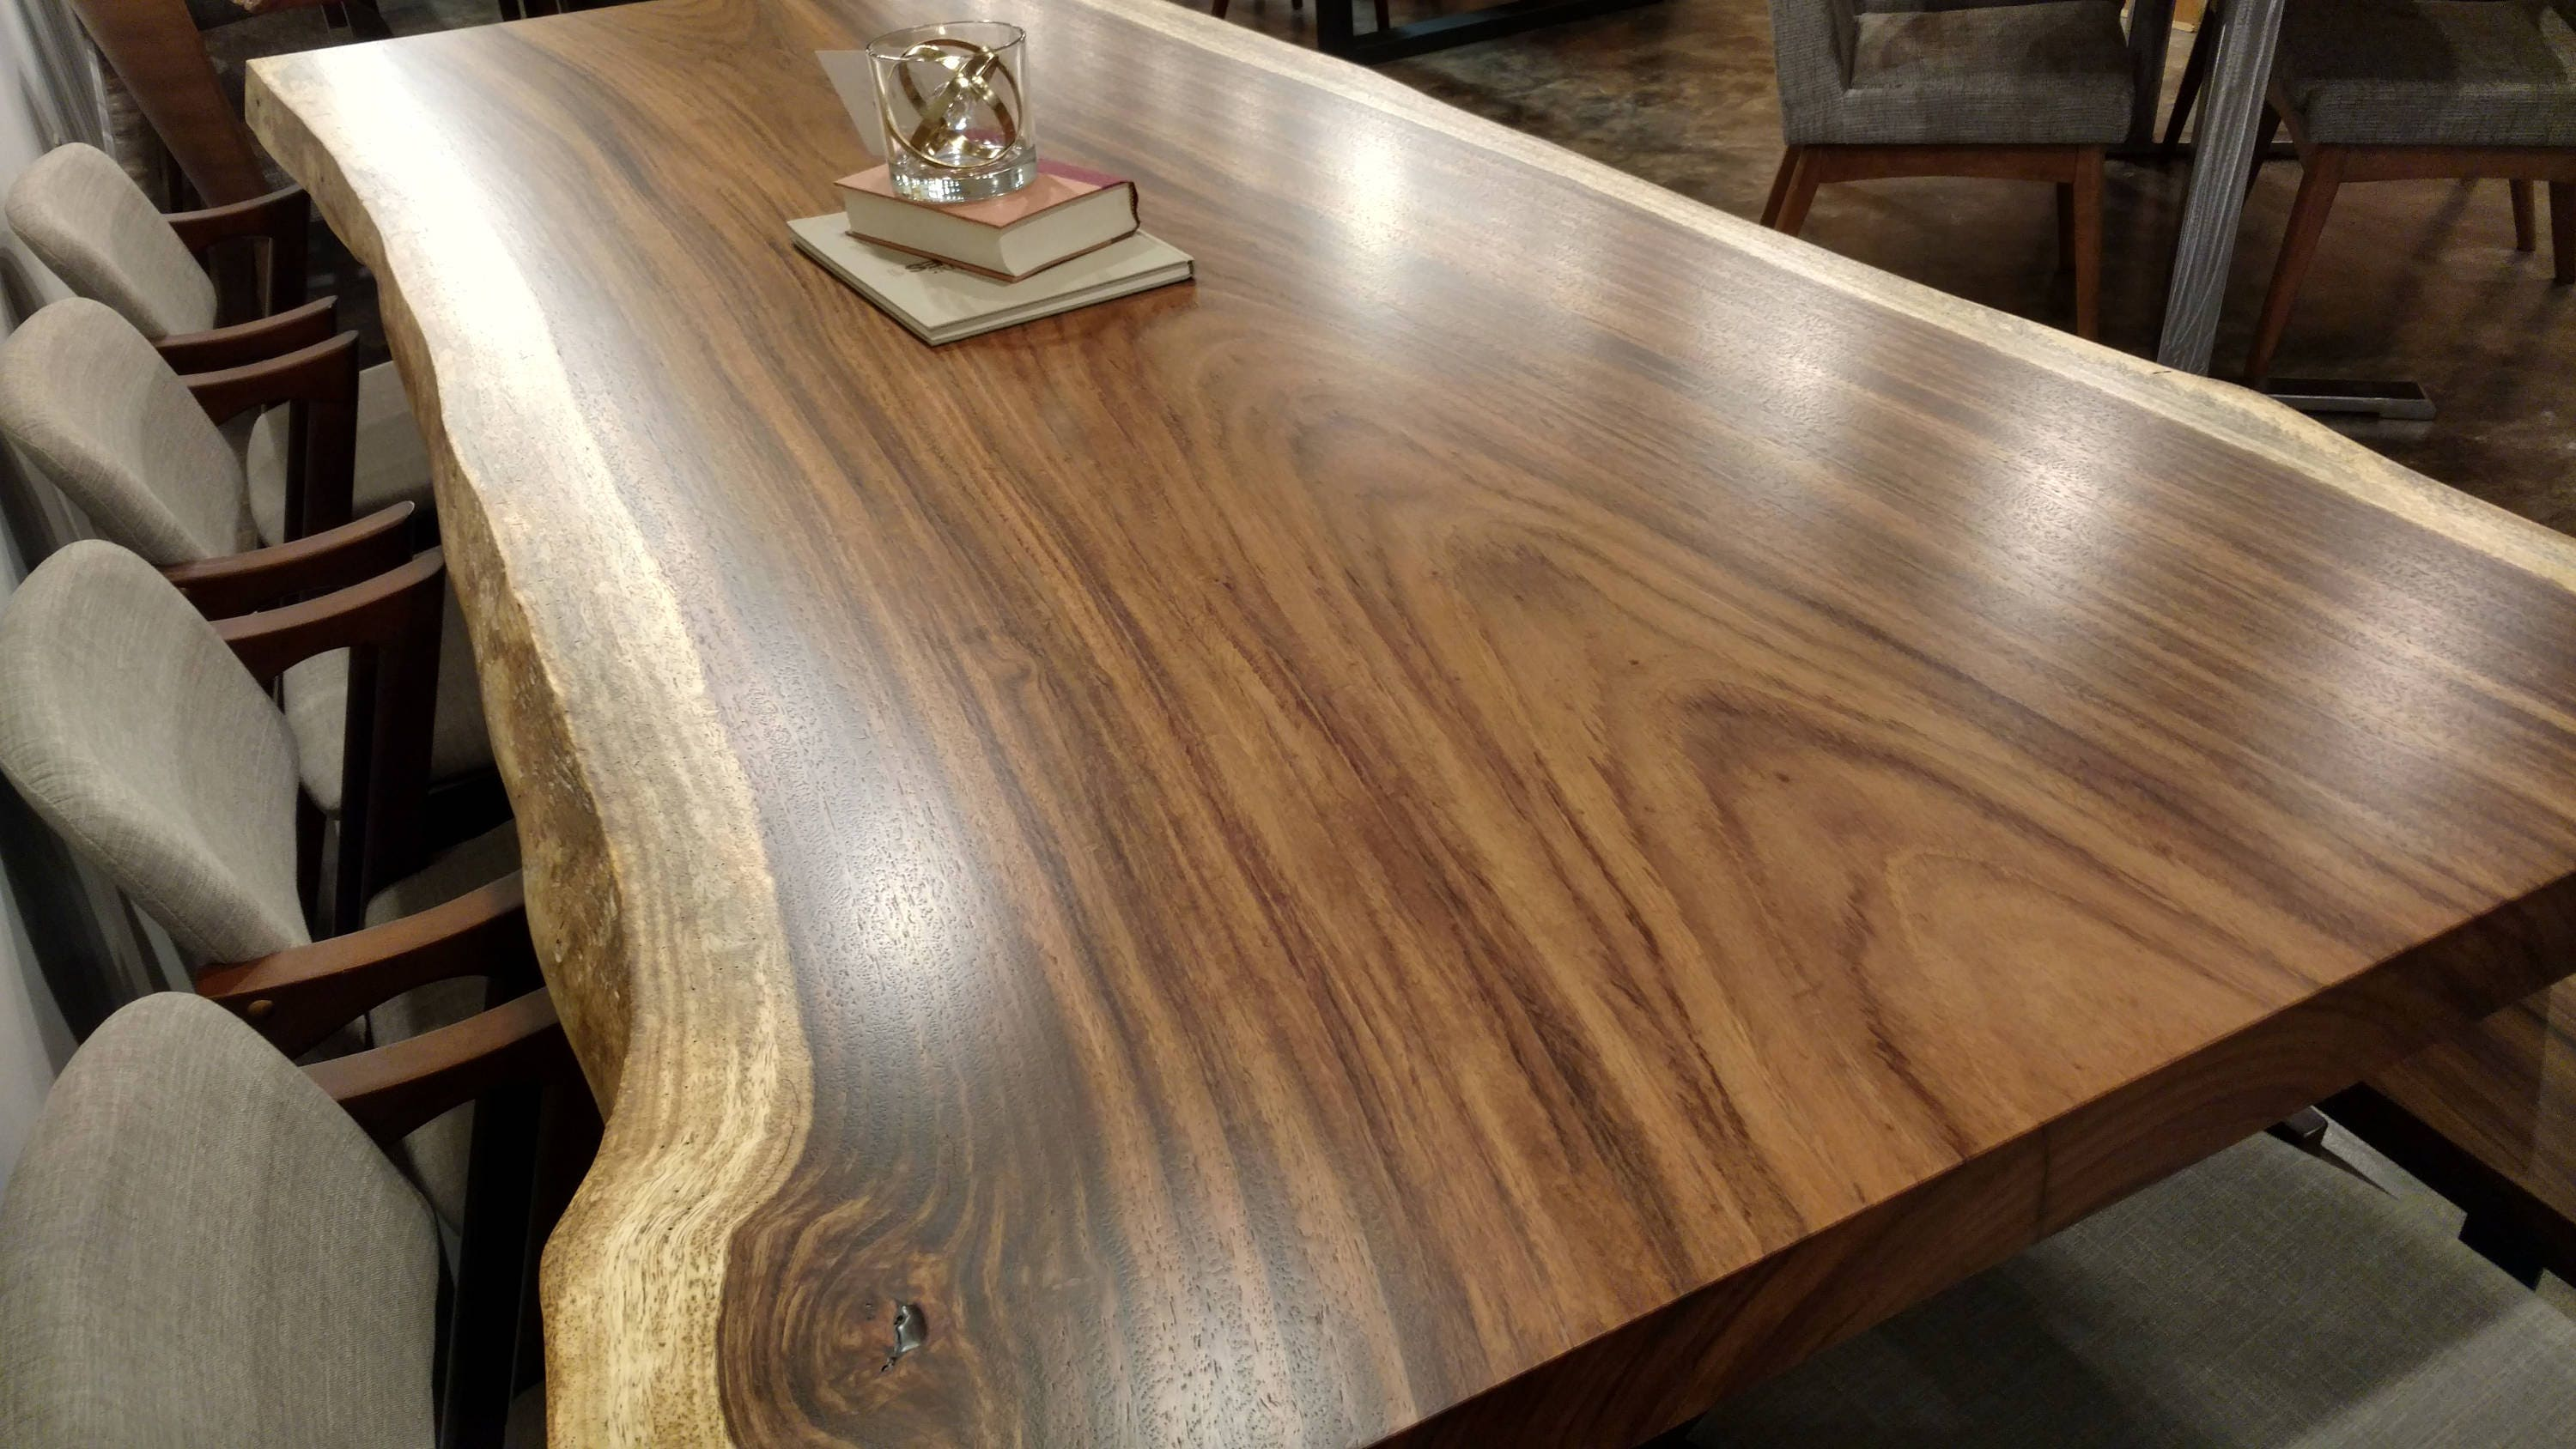 black giant grant diningtable bjorling dining edge bookmatched walnut live table